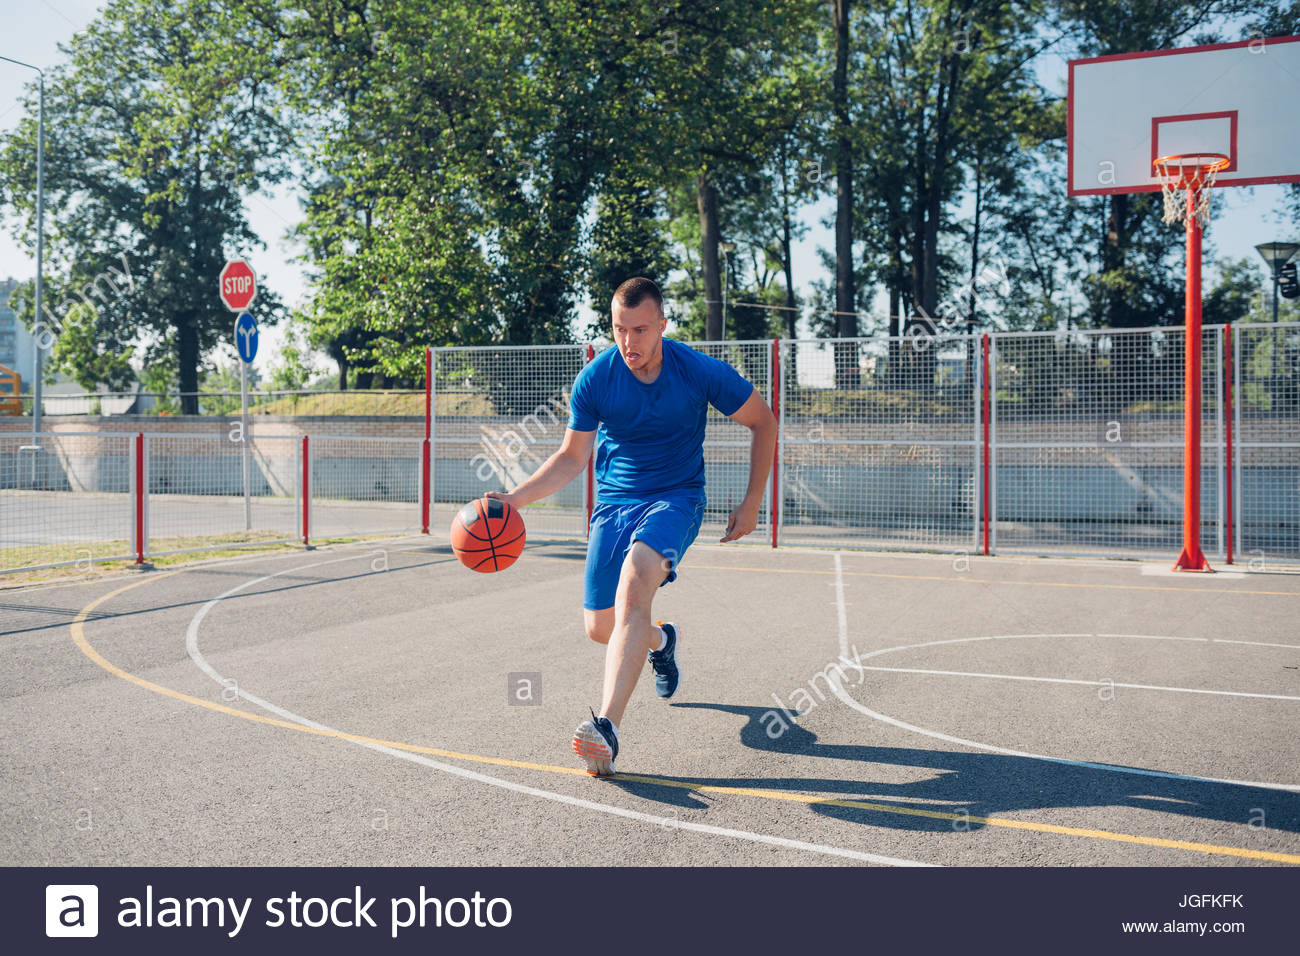 Young Caucasian basketball player dribbling a ball - Stock Image